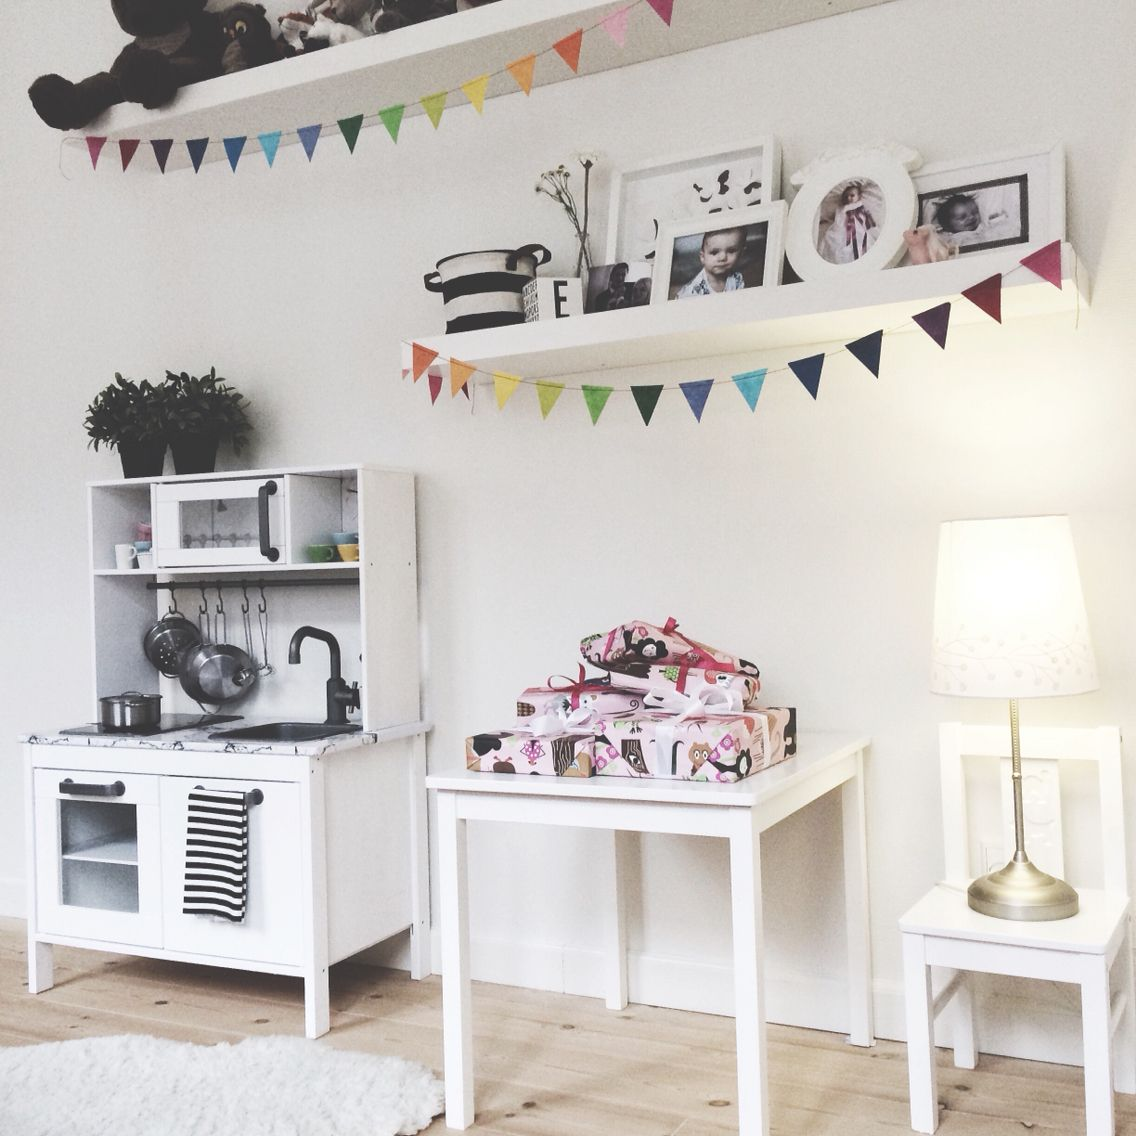 Kids room - IKEA duktig kitchen | Ikea keukentje | Pinterest ...